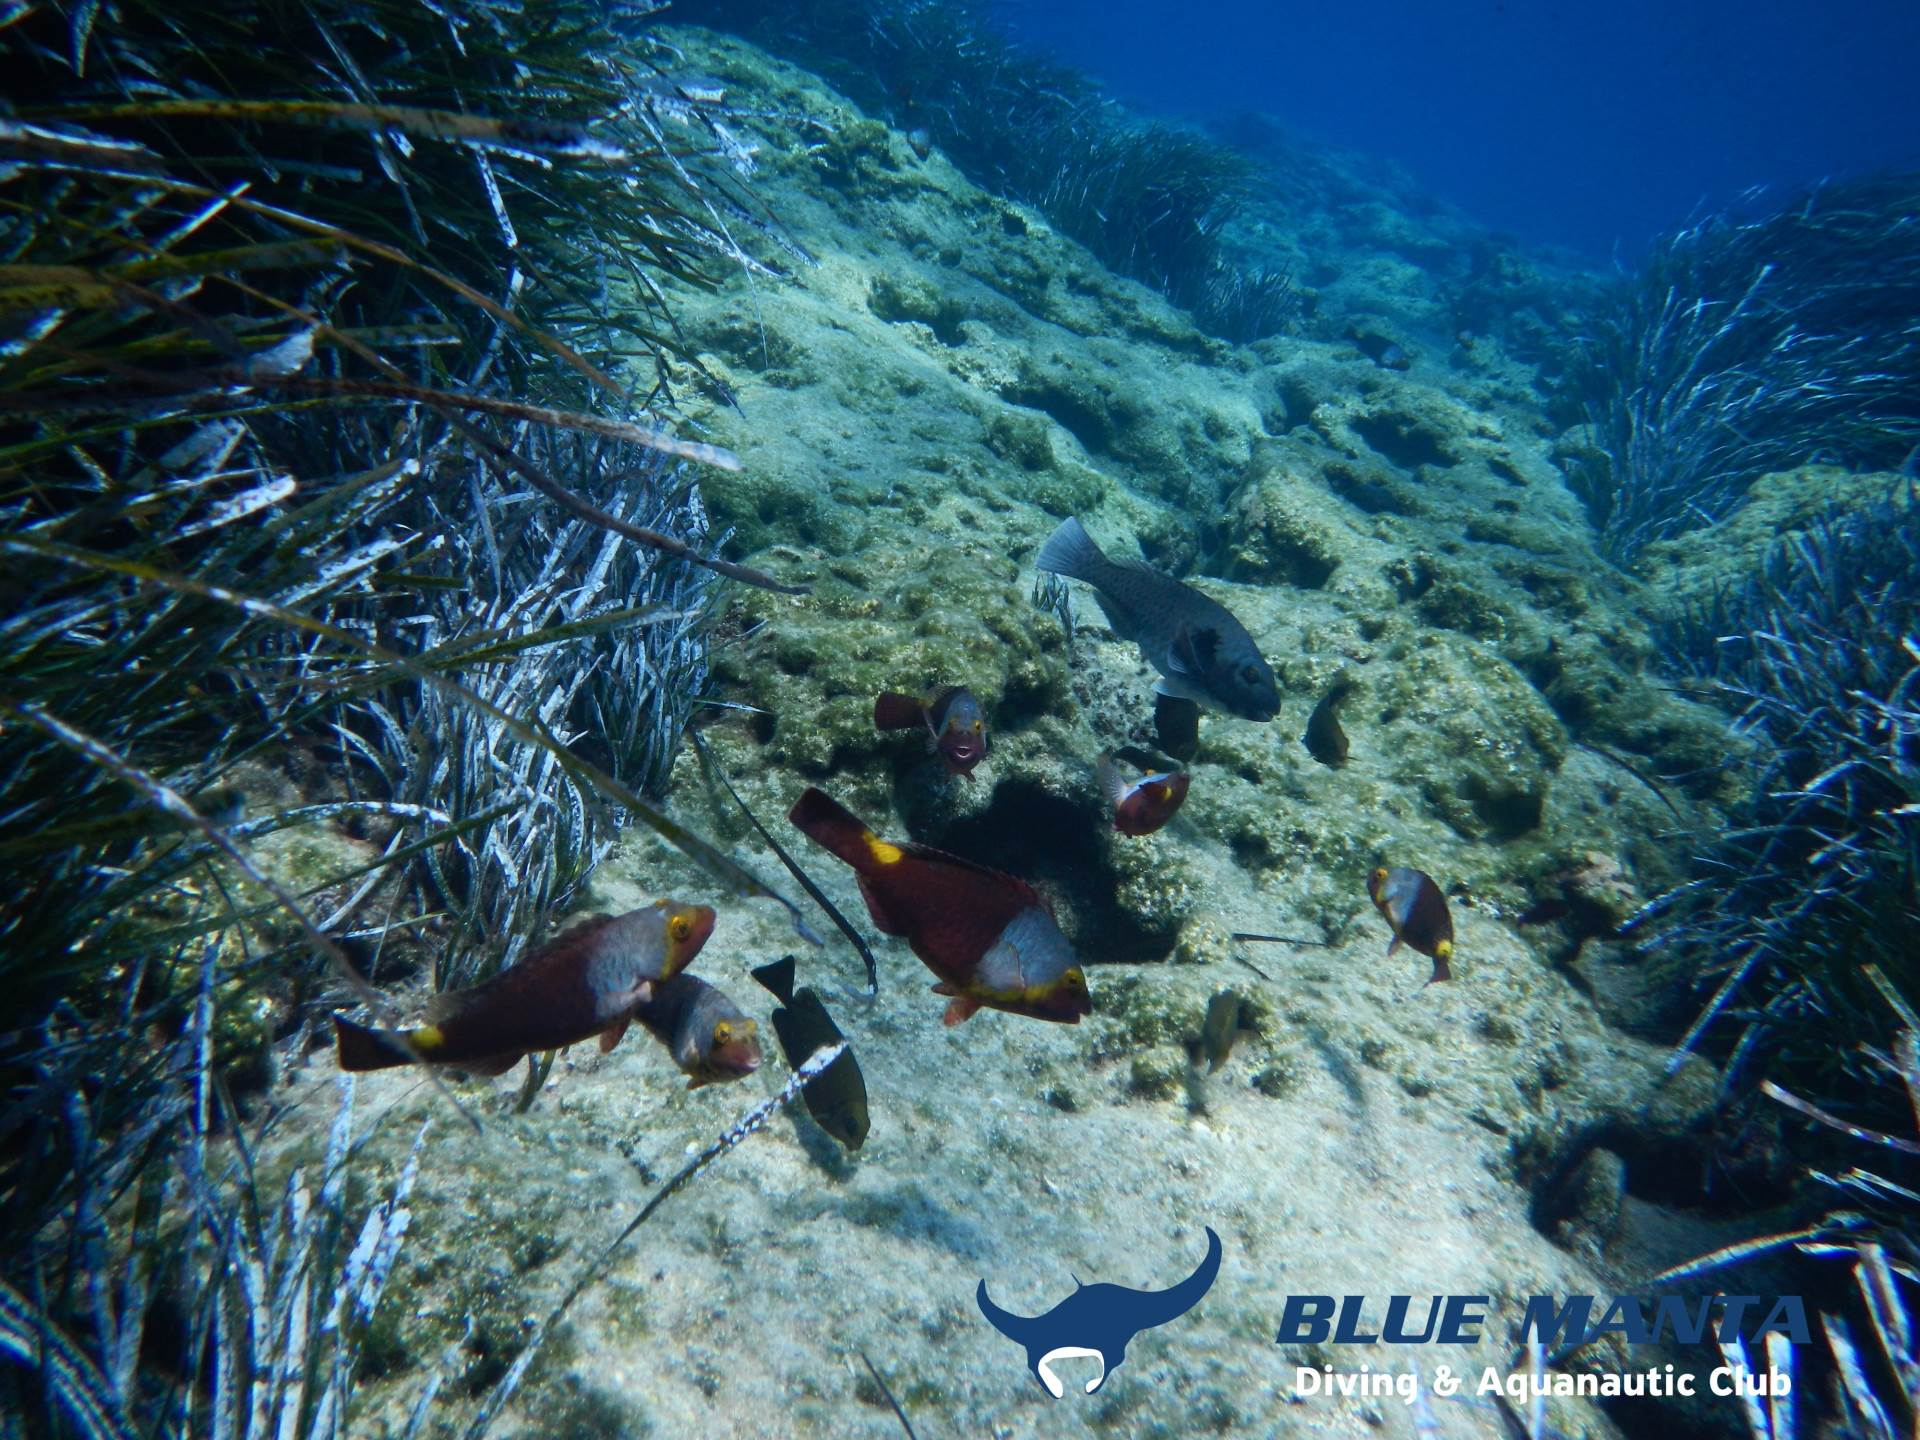 A school of Mediterranean parrotfish. The colourful are the females and the grey is the dominant male.